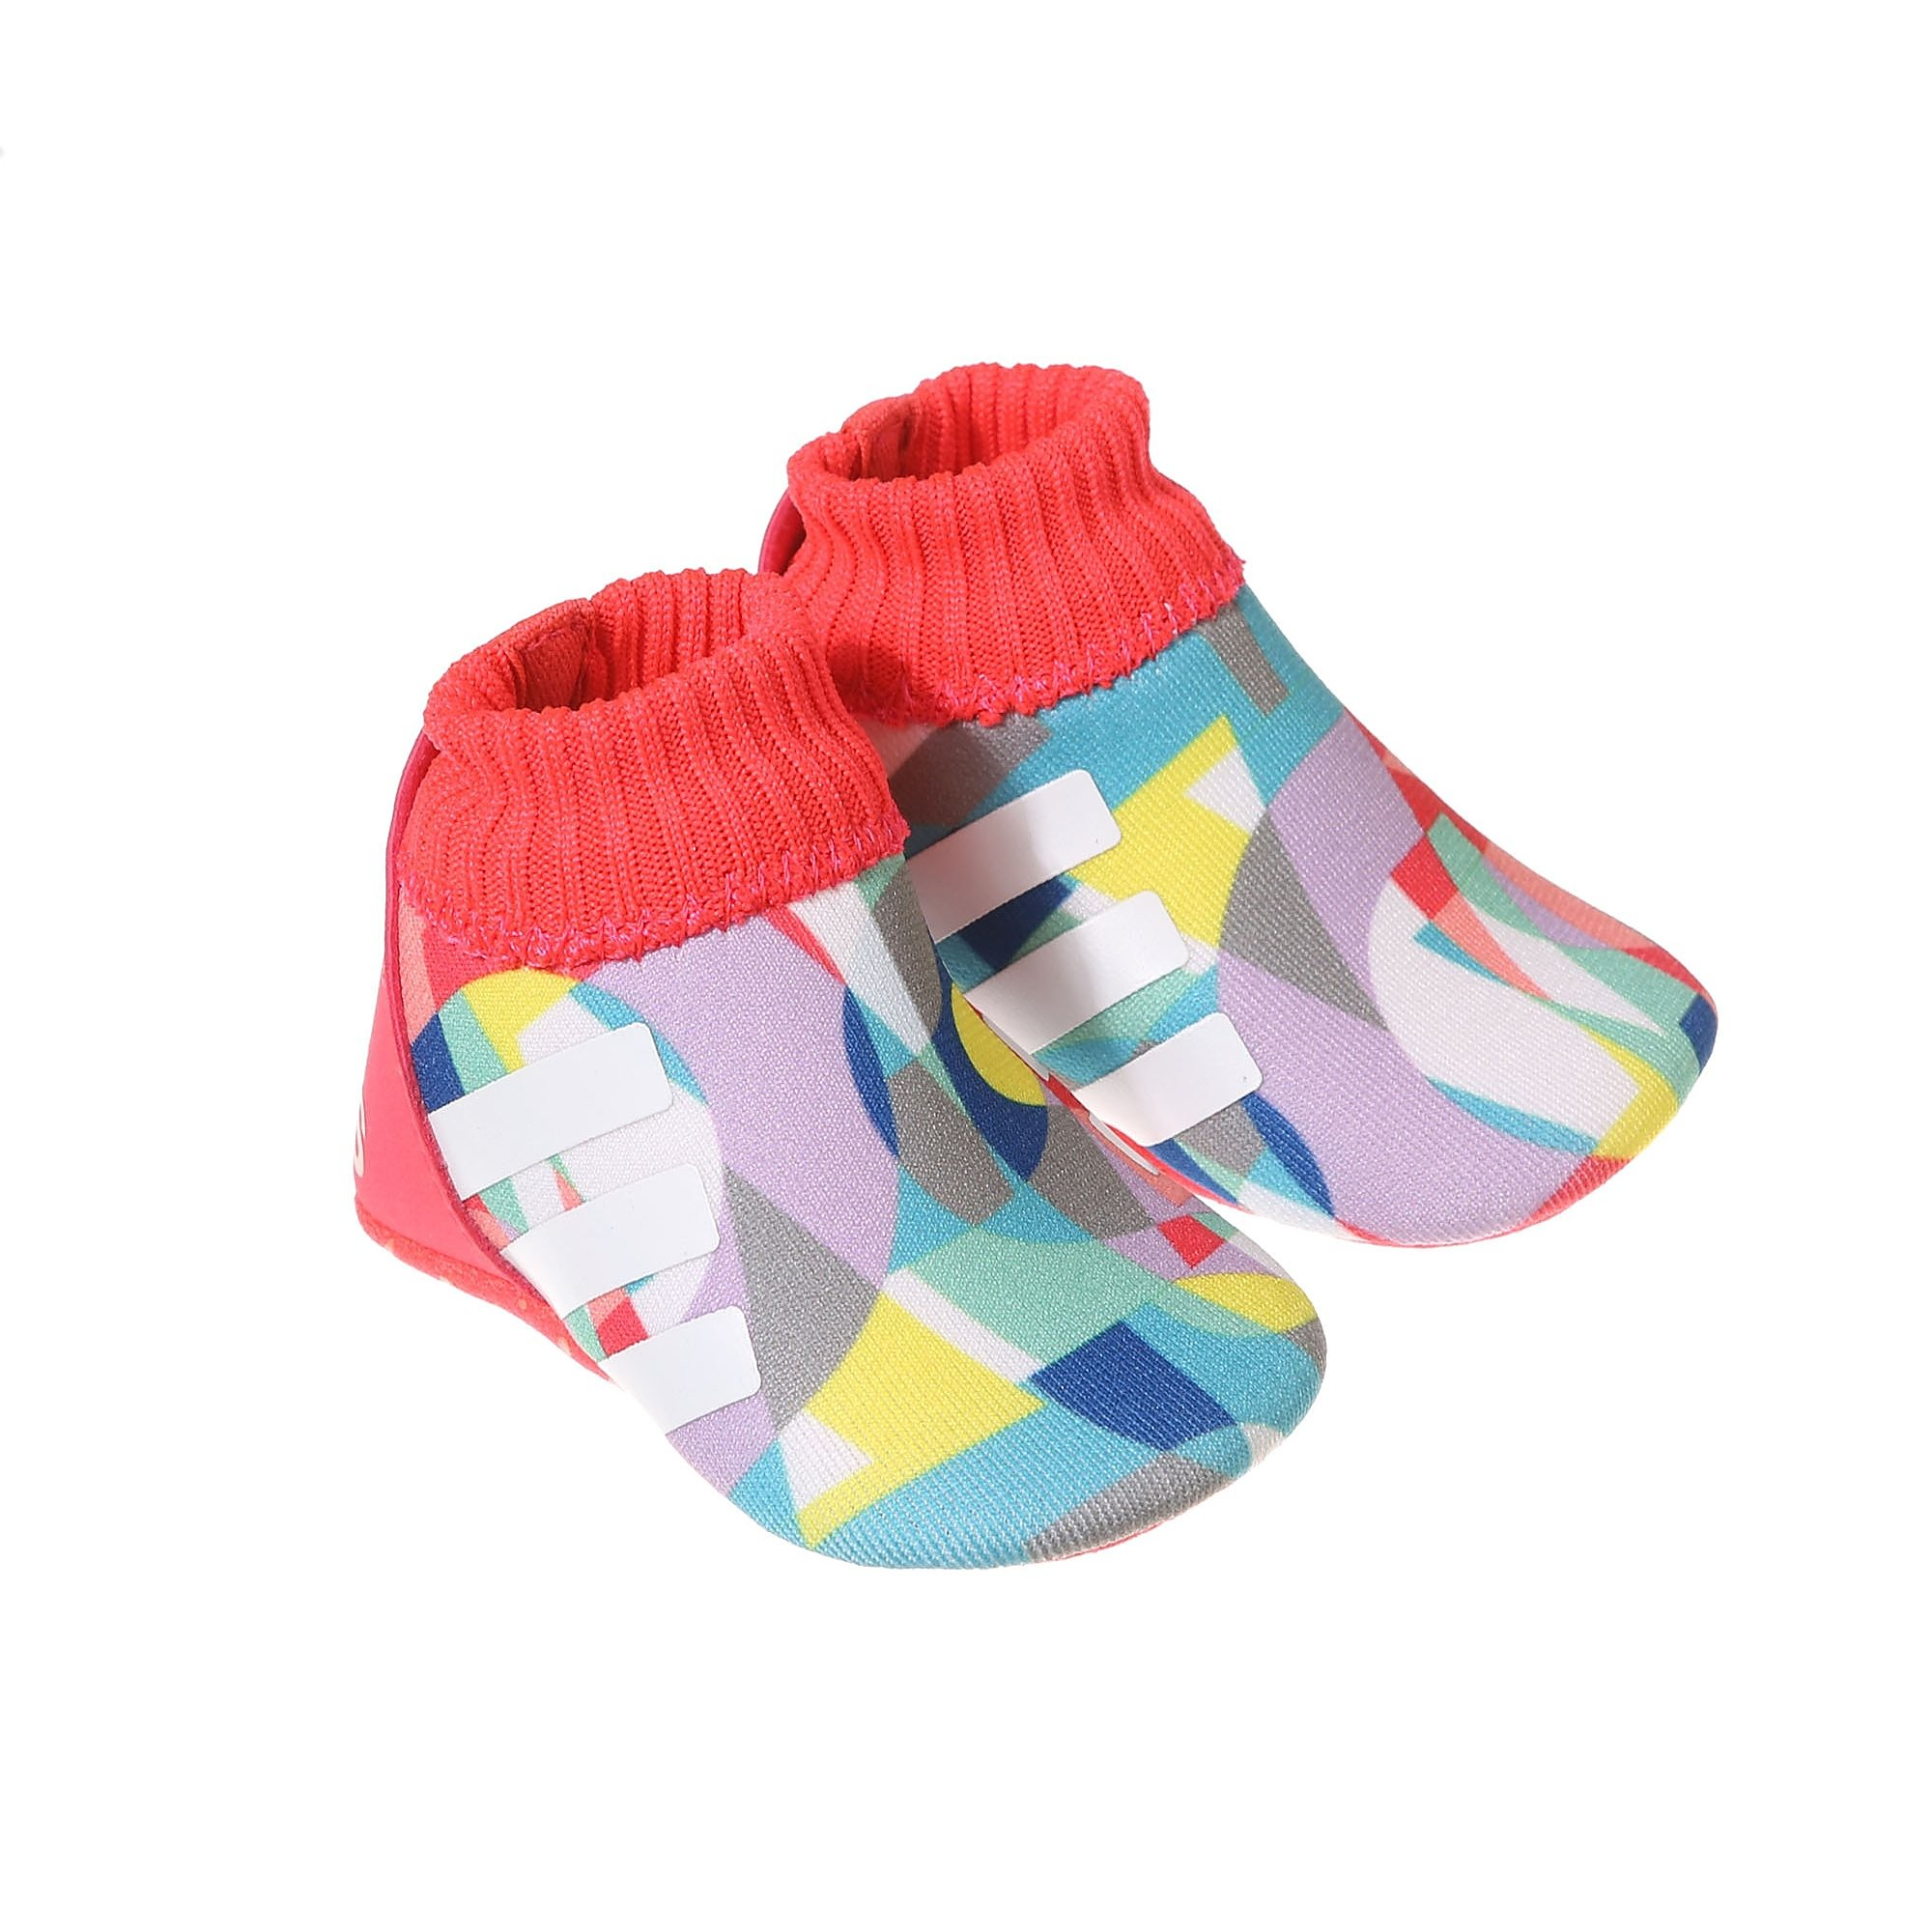 ADIDAS RELINO 2 CRIB SNEAKERS ROOD BABY